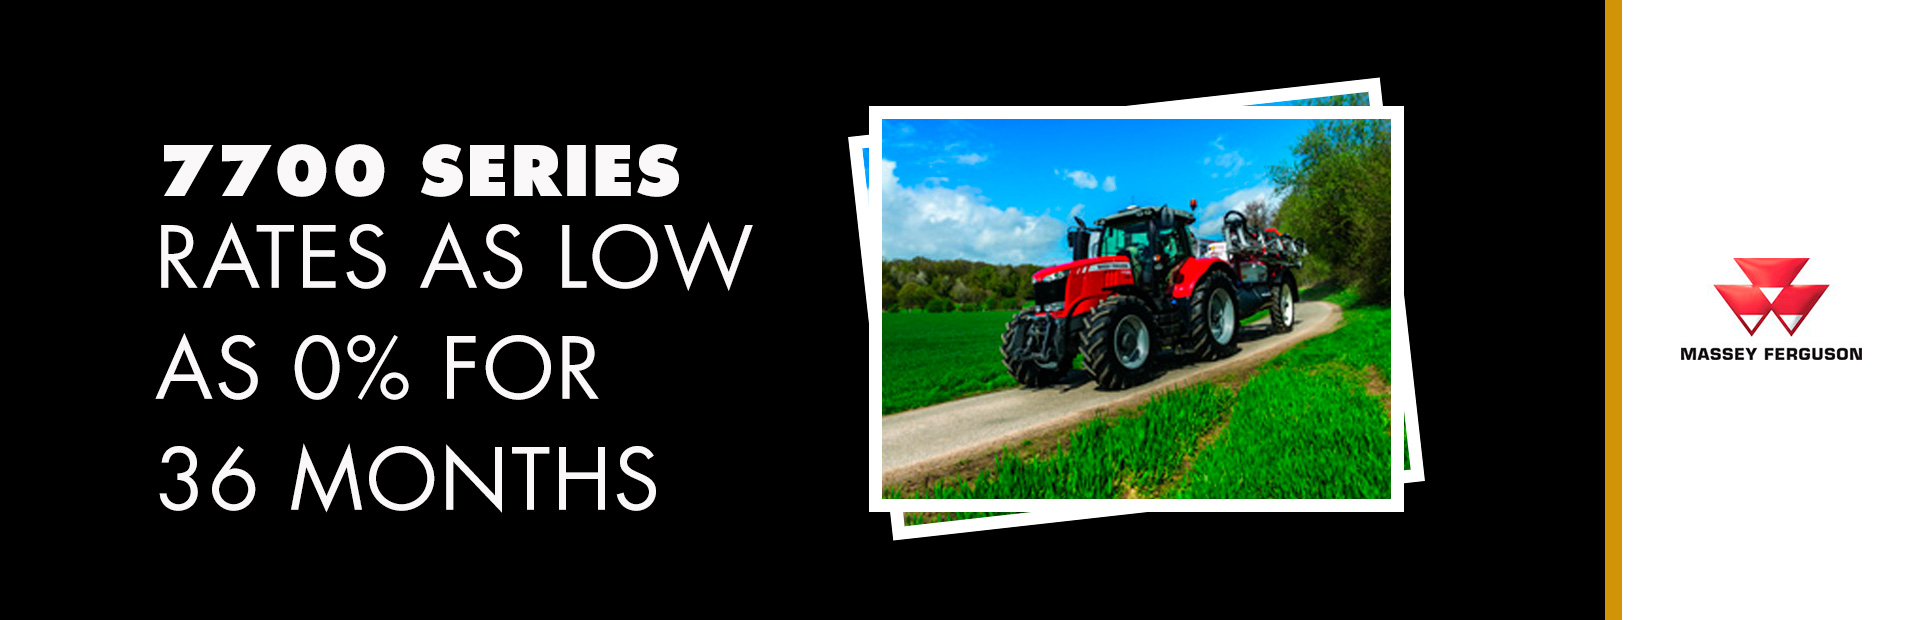 Massey Ferguson: 7700 Series - Rates as low as 0% for 36 Months